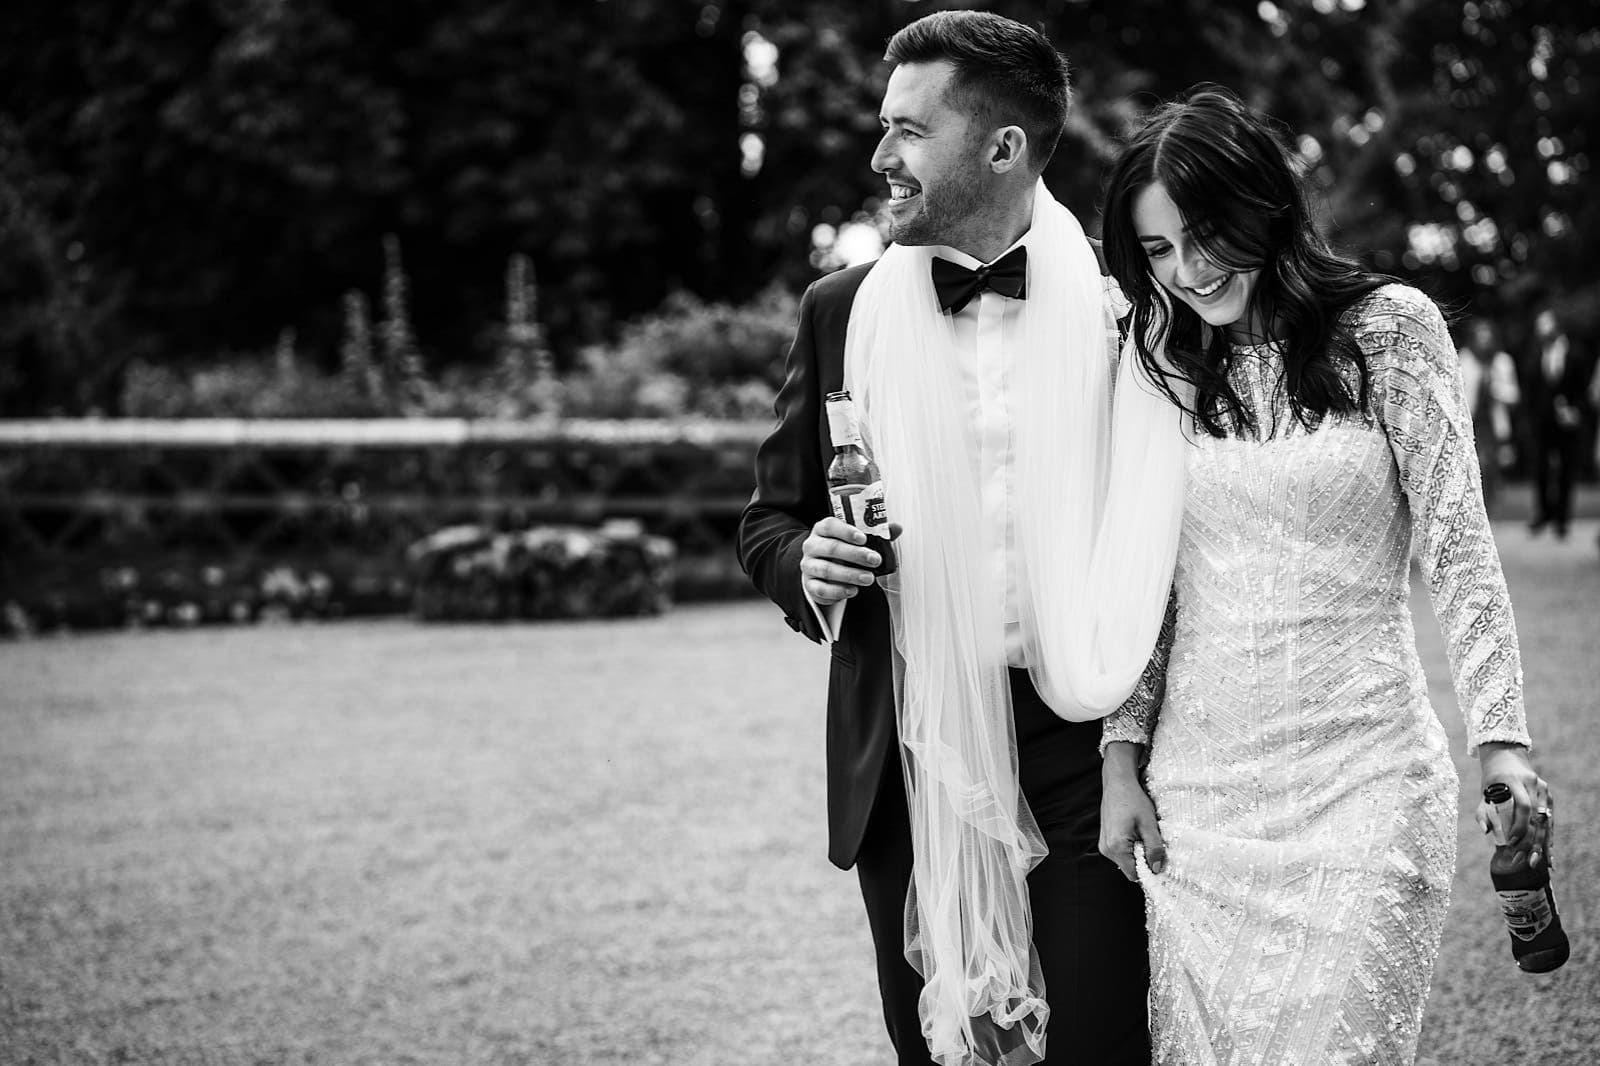 best wedding photos 2019 in the UK